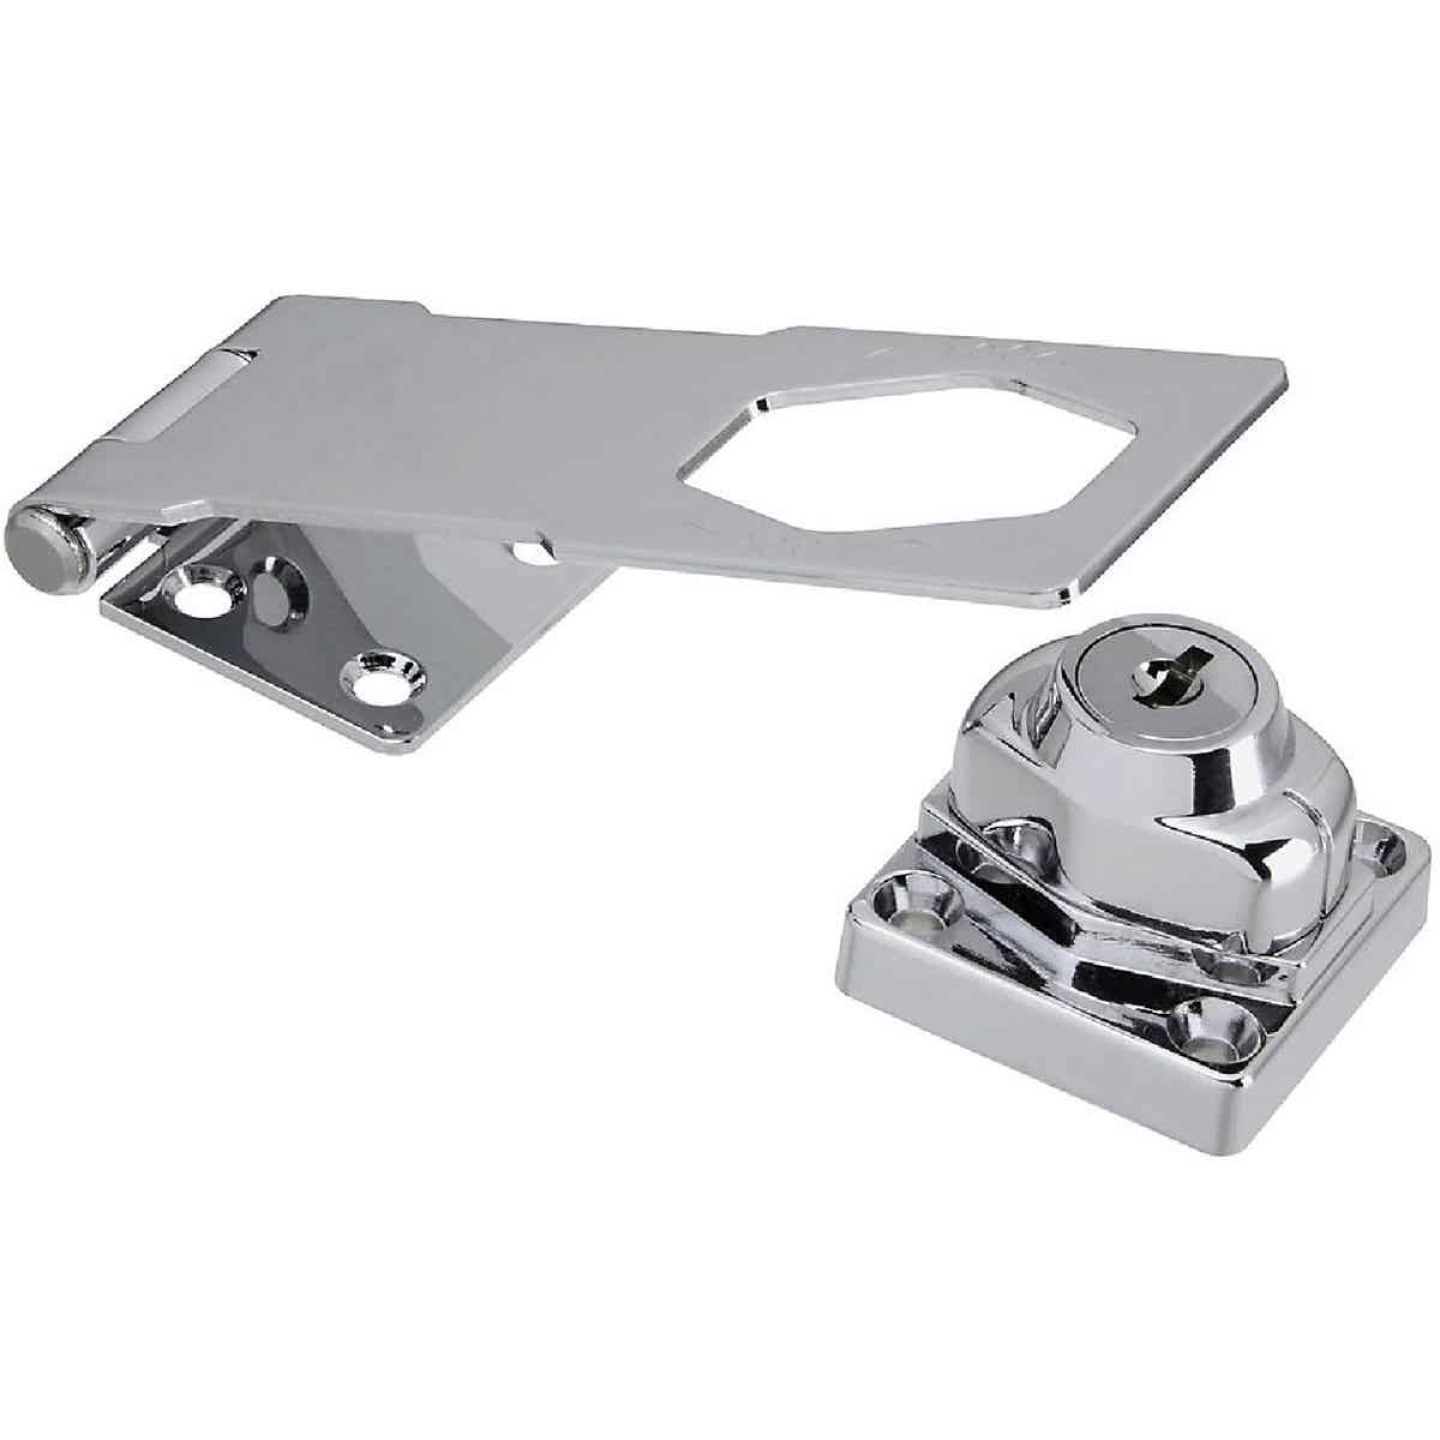 National 4-1/2 In. Keyed Different Hasp Lock Image 1